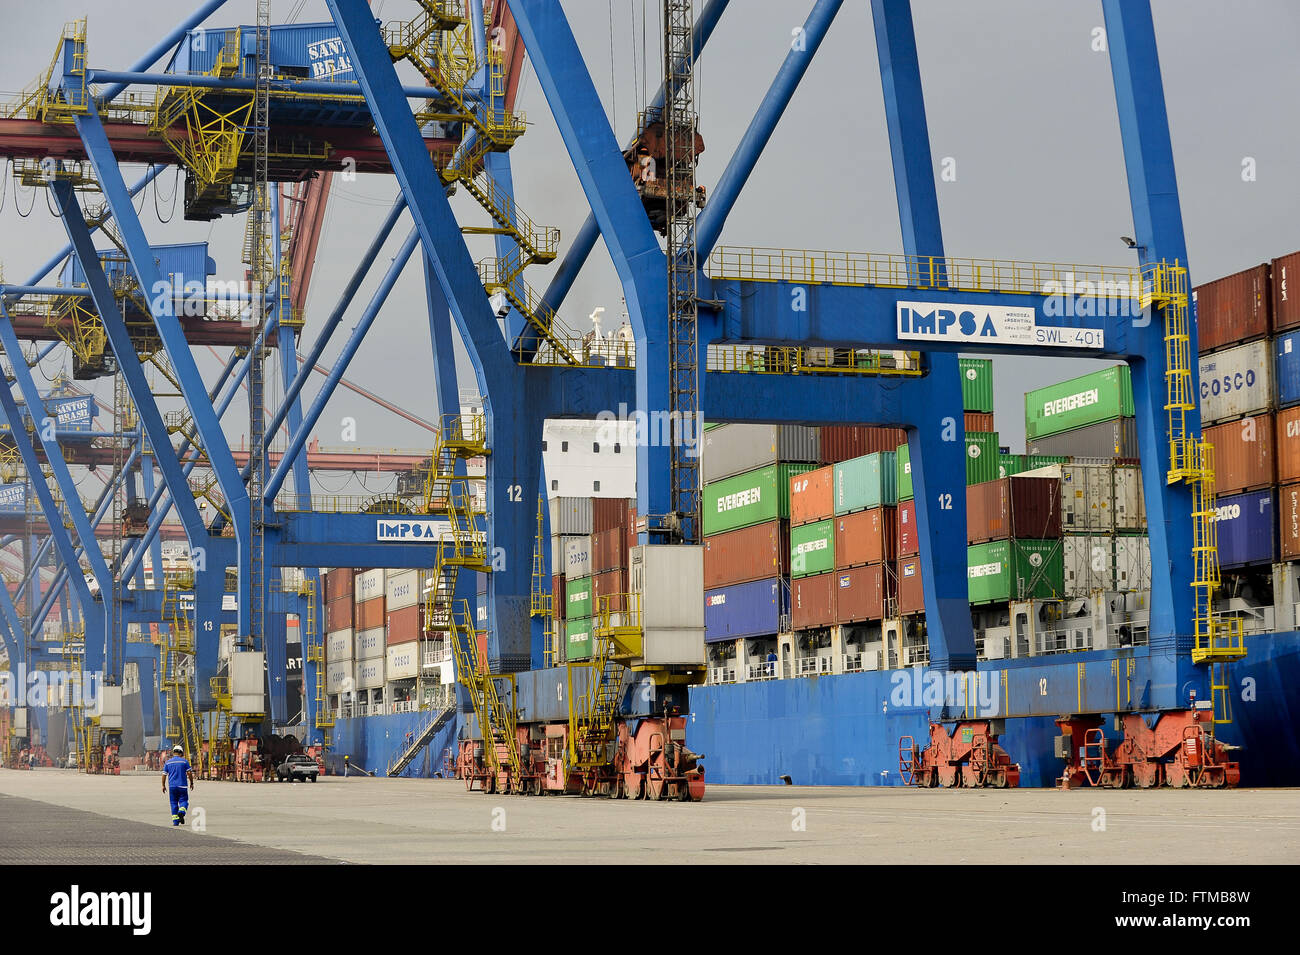 Cargo ships being loaded at the Port of Santos - Stock Image